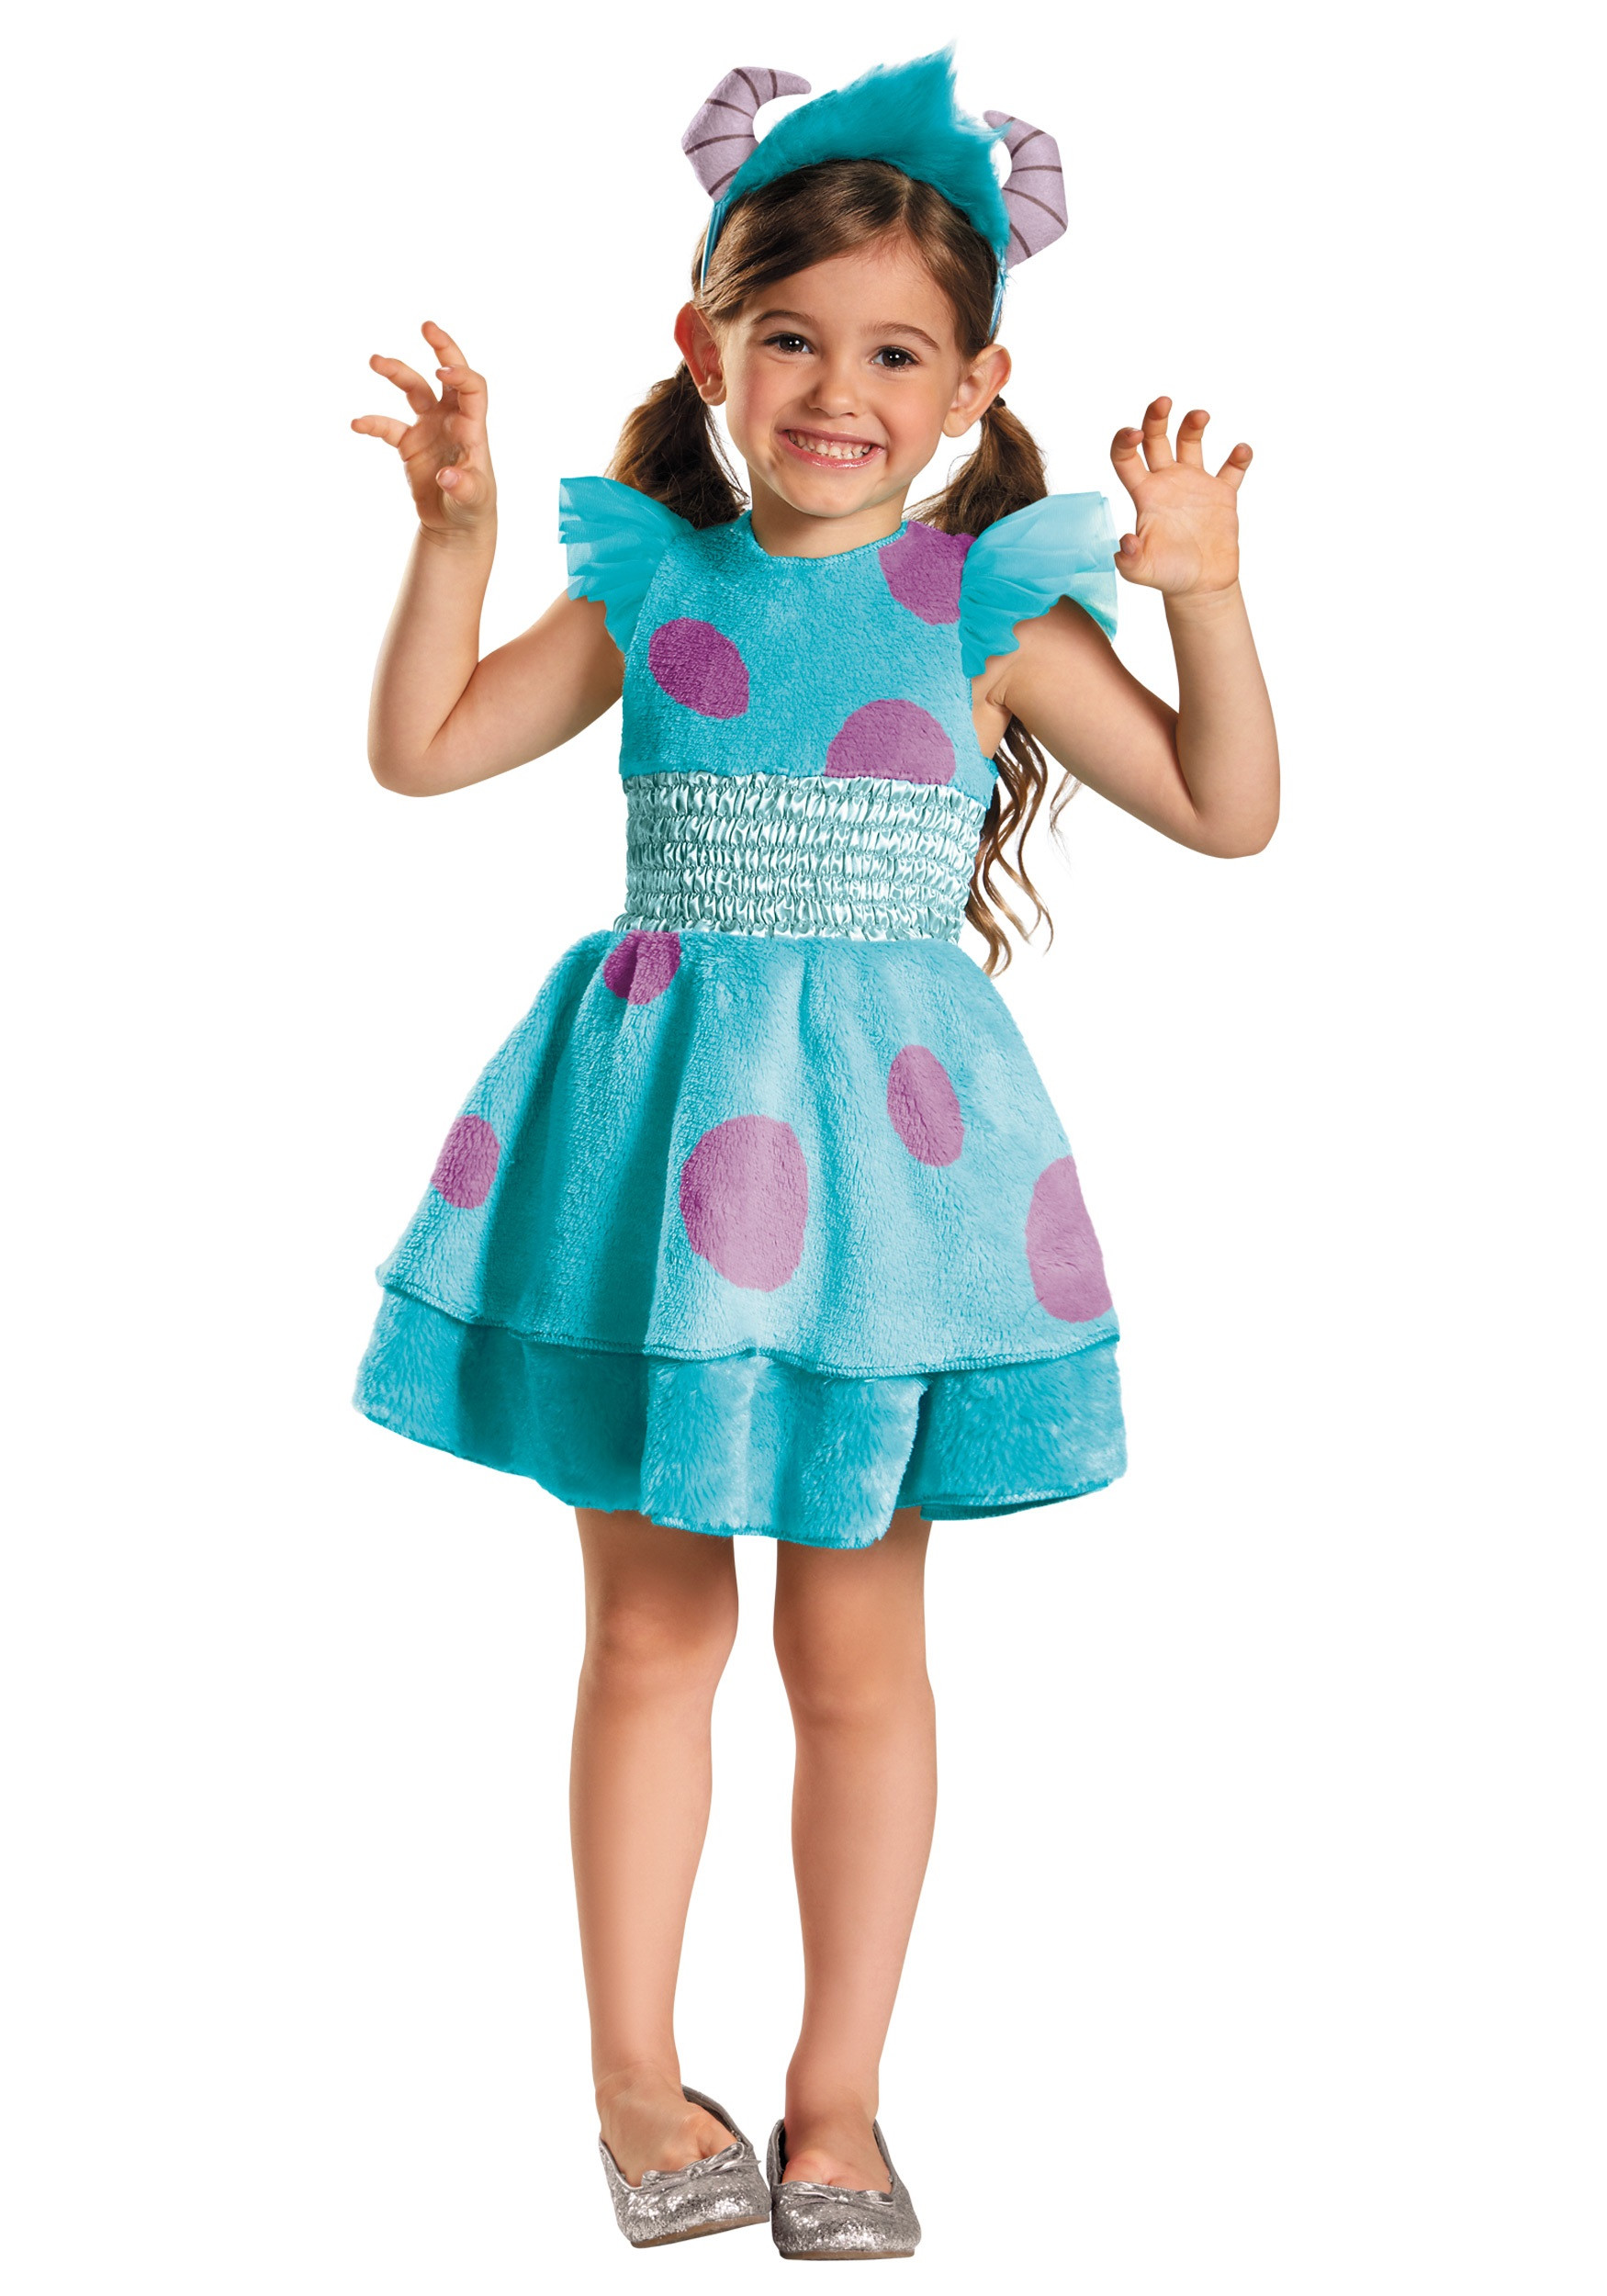 Best ideas about DIY Costumes For Girls . Save or Pin Sulley Girl Deluxe Costume Now.